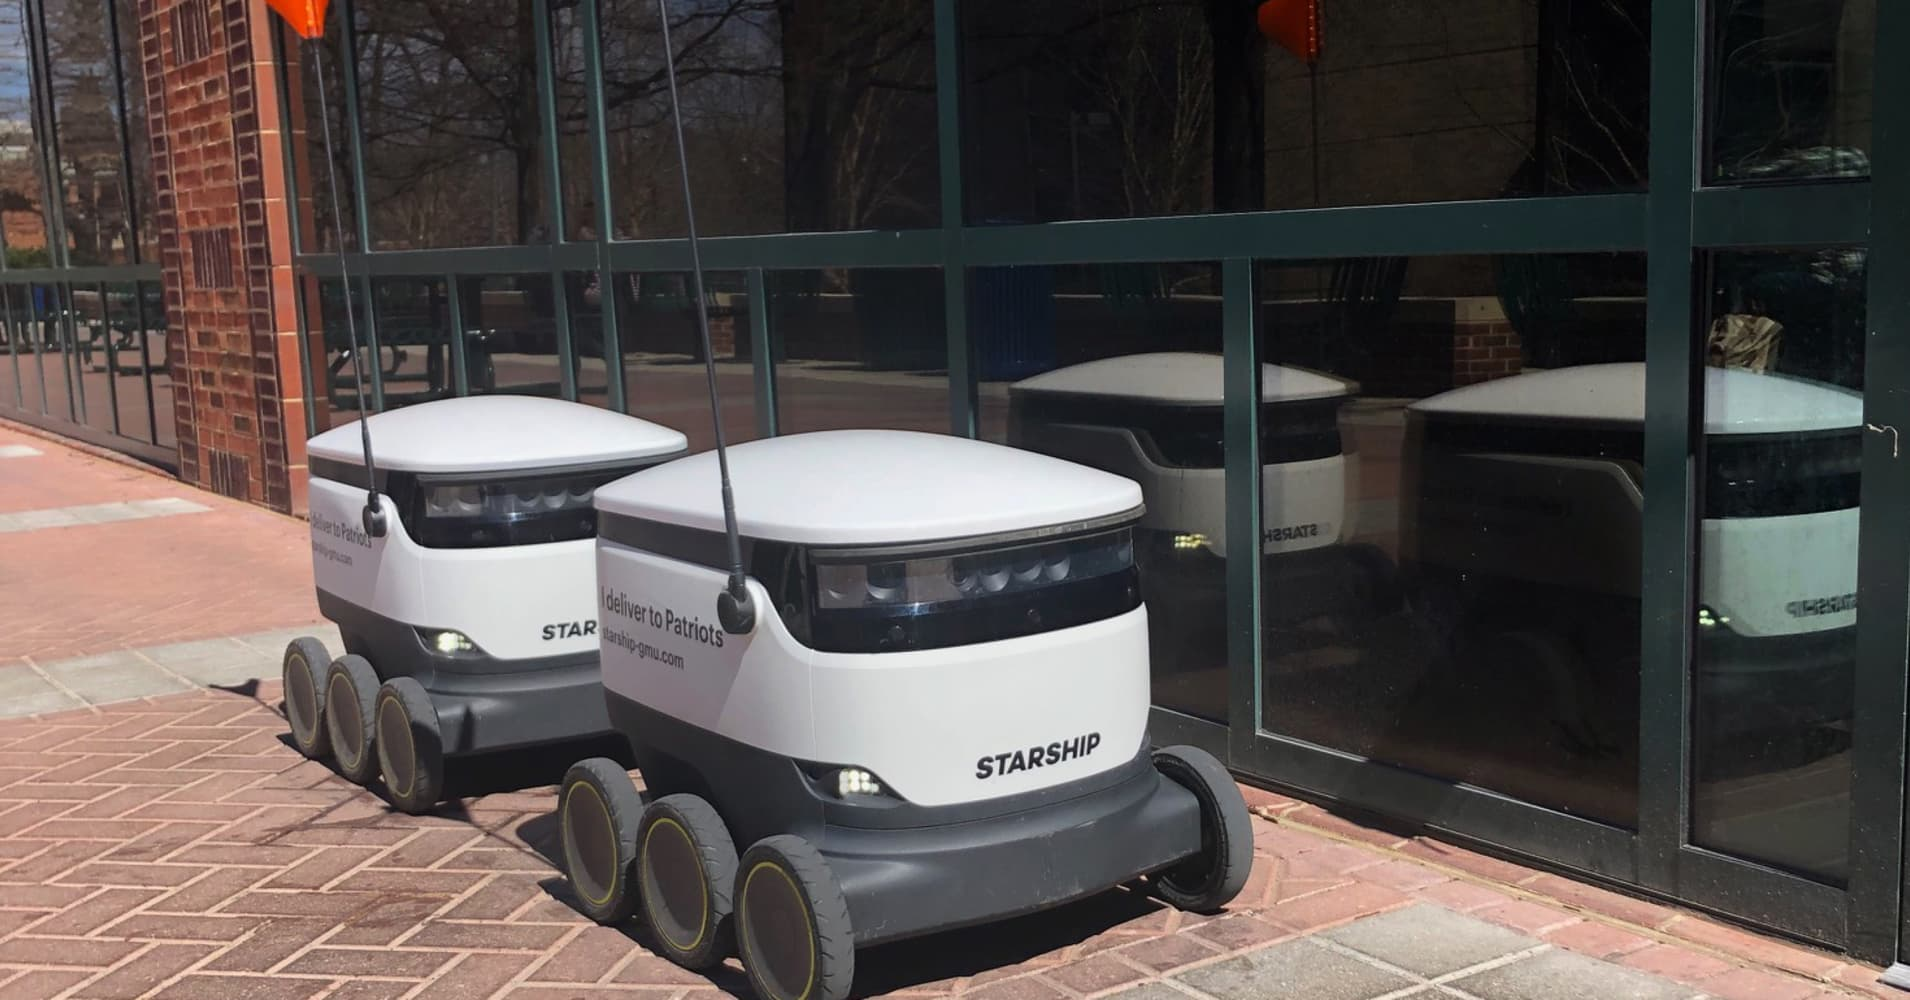 Robot food delivery service expands at George Mason University